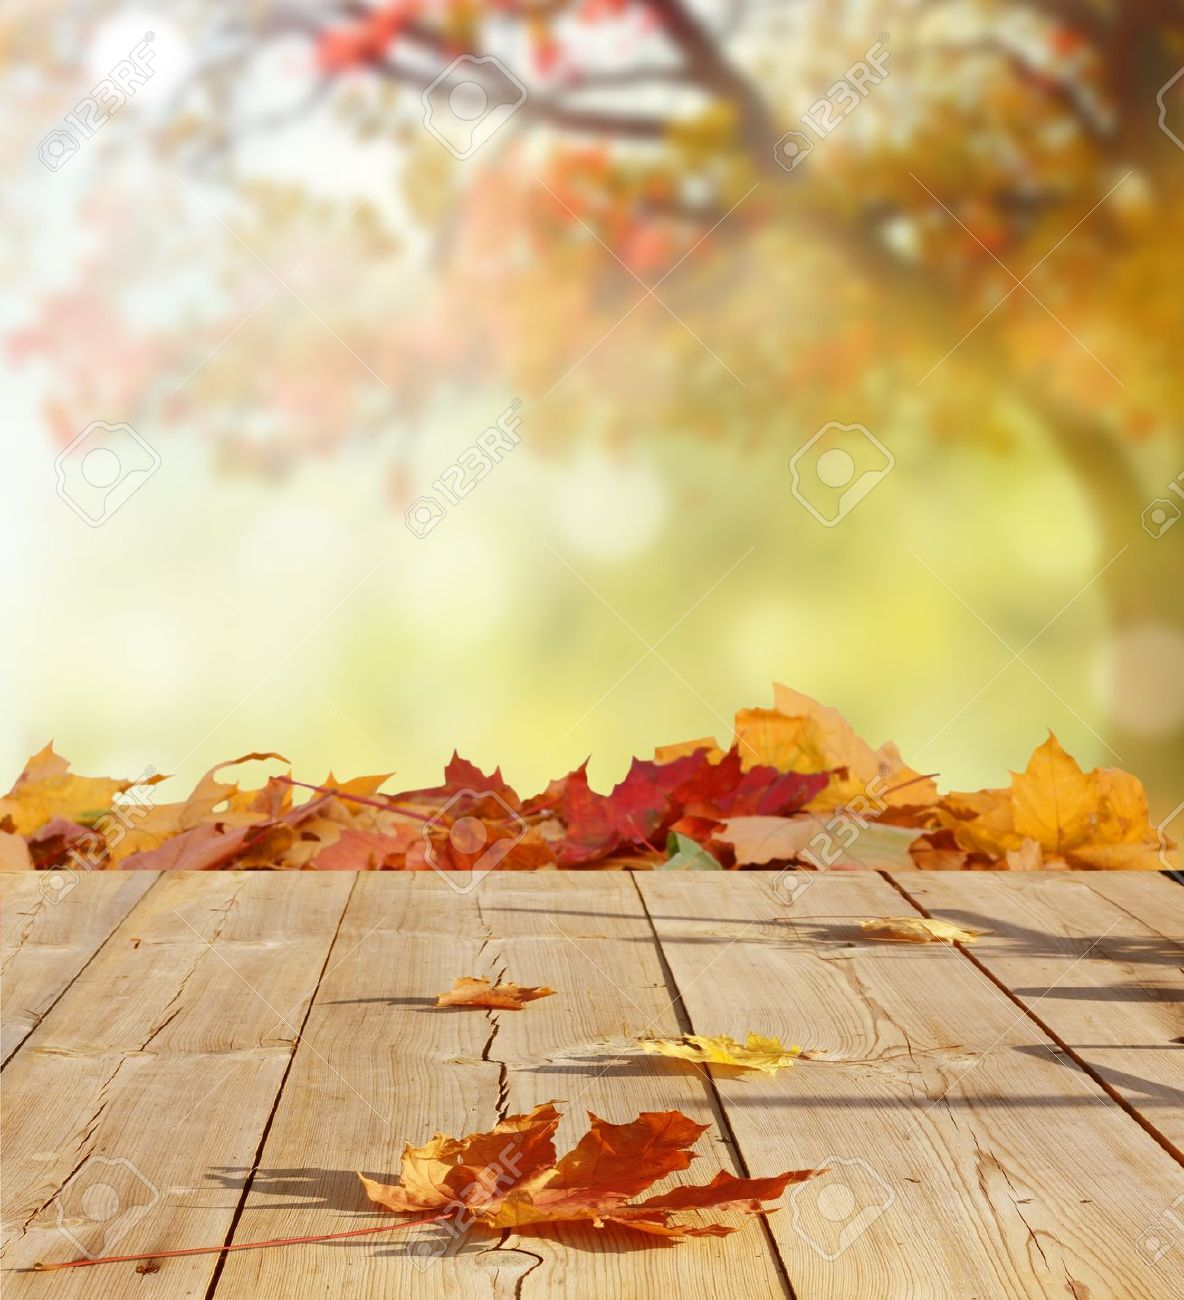 Free Photography Stock Autumn Background